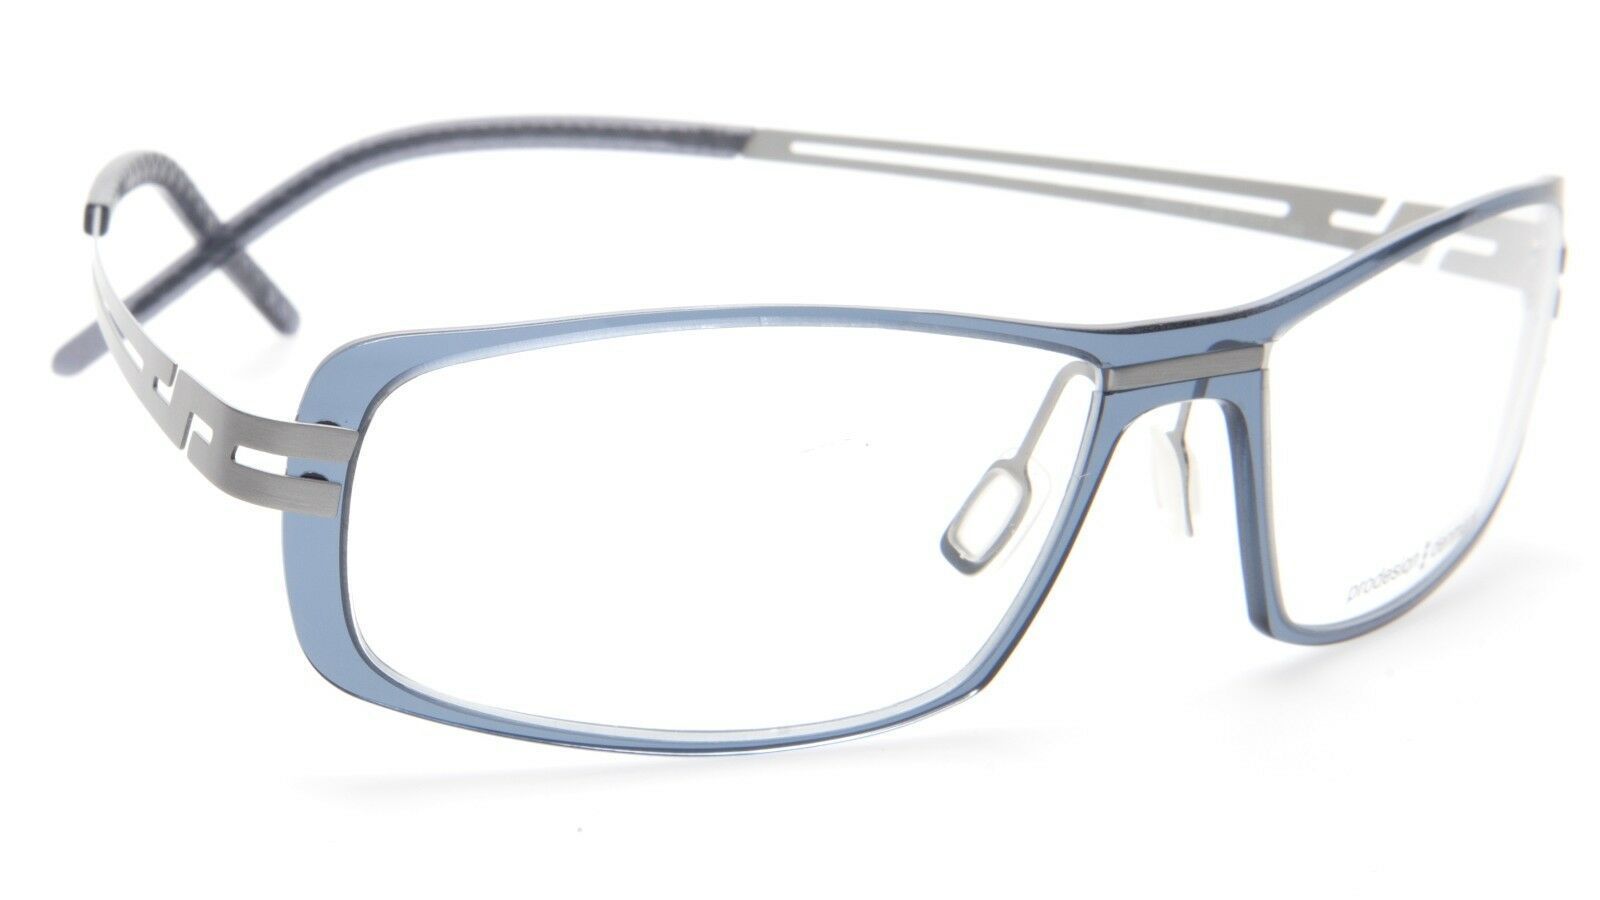 NEW PRODESIGN DENMARK 6503 c.6735 GREY BLUE EYEGLASSES FRAME 57-17-150 B32 Japan